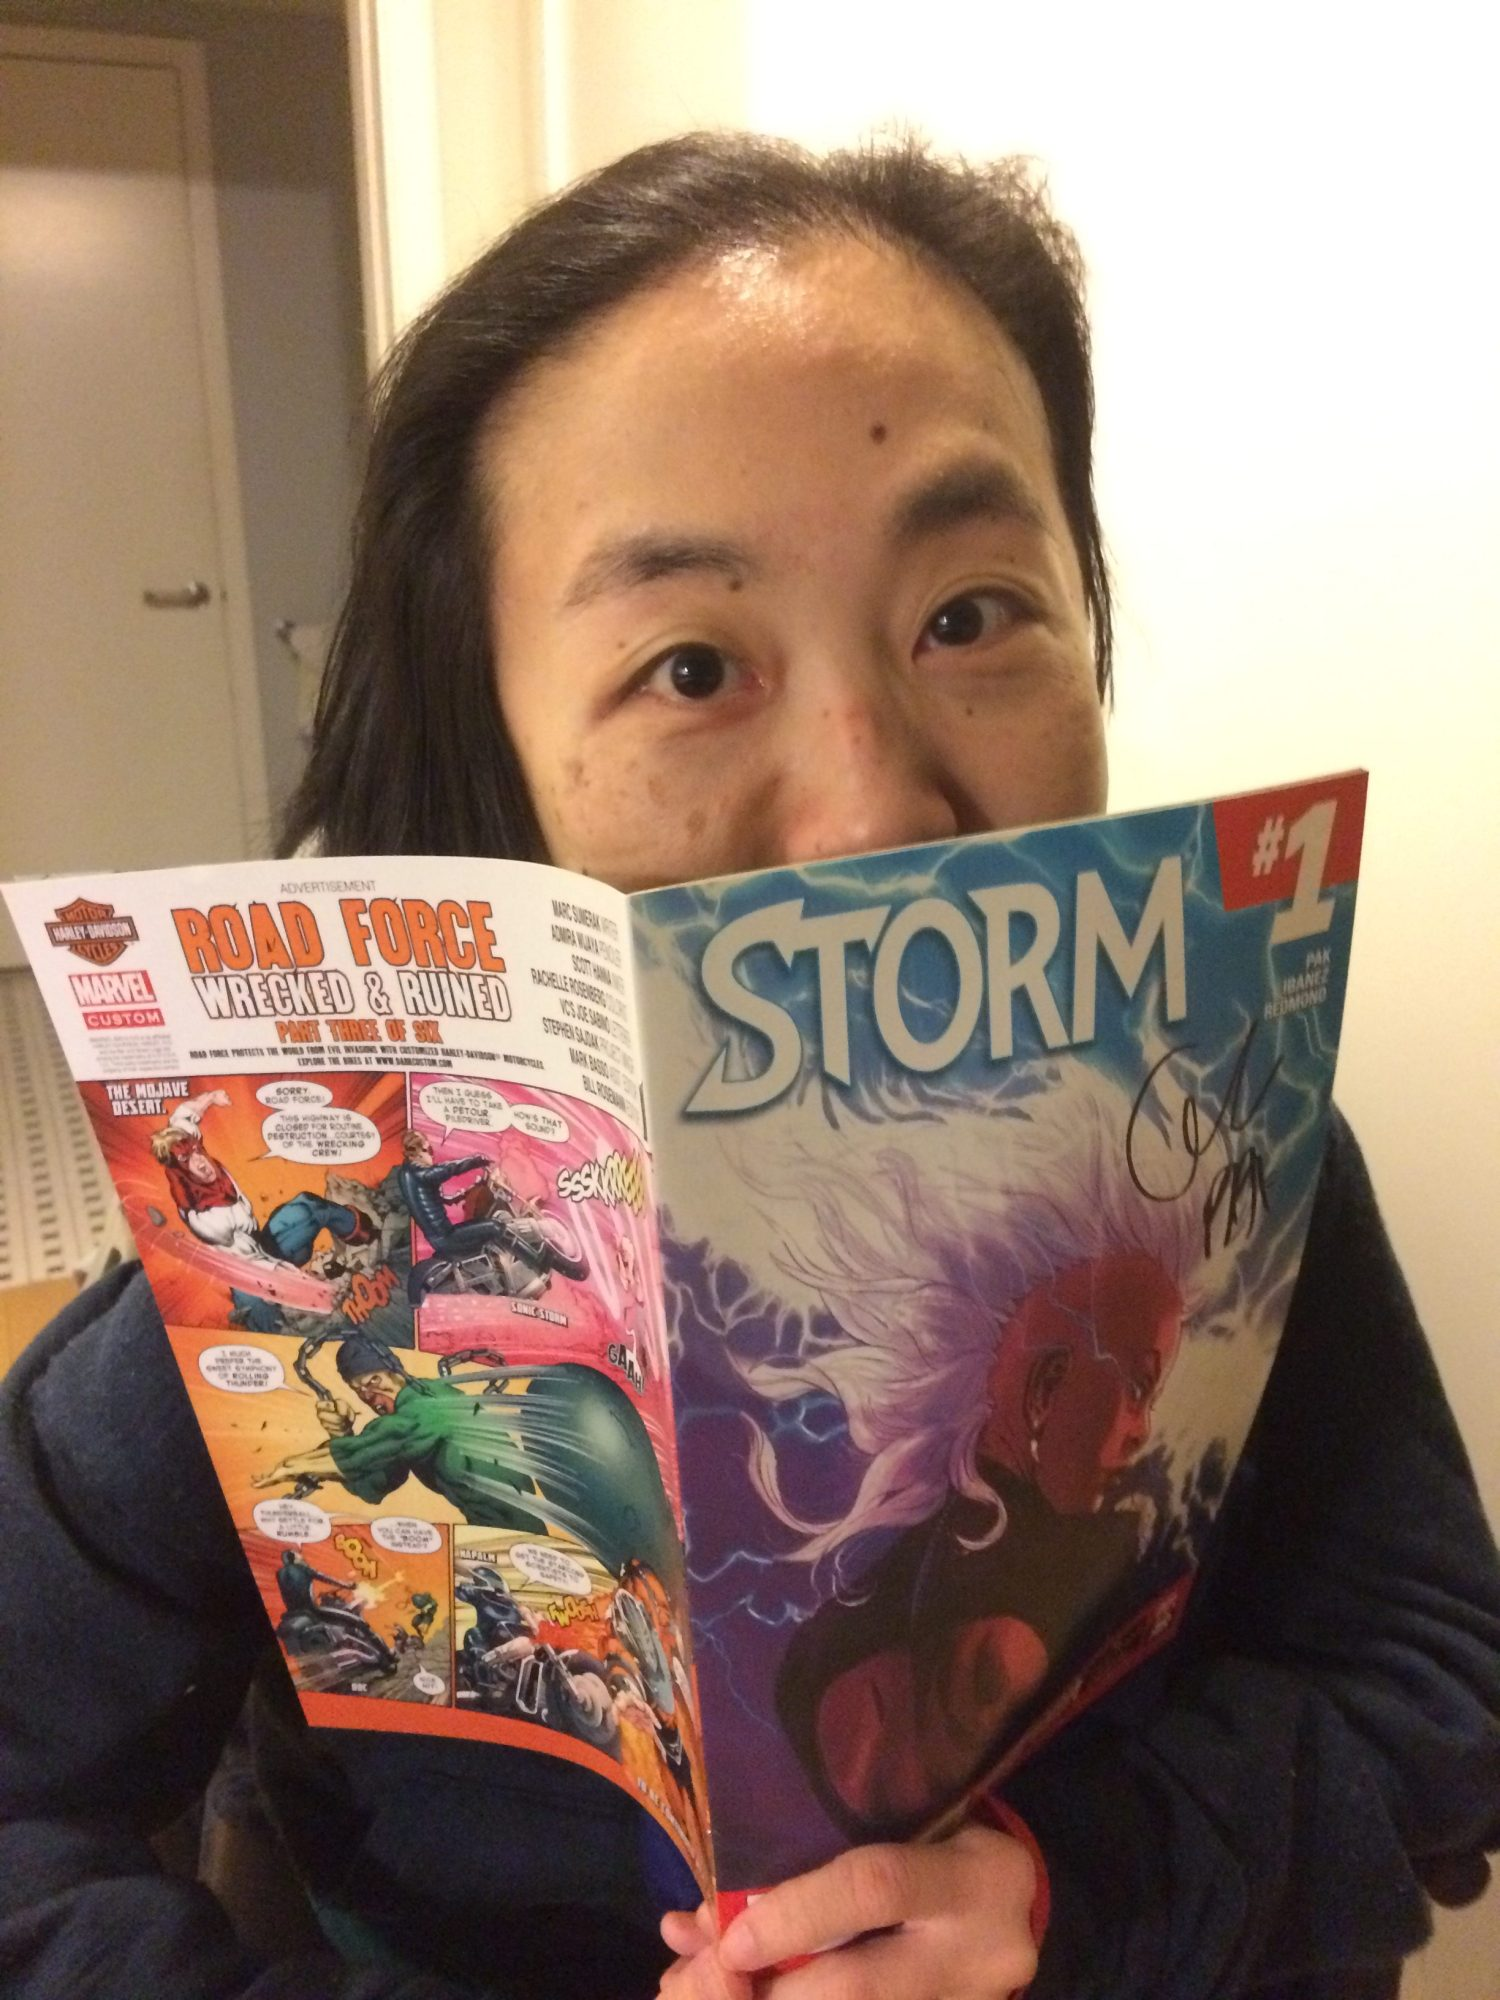 Asian American woman in a wheelchair wearing a navy hoodie. She is holding a comic book by Marvel, Storm #1, close to her face, covering her mouth.